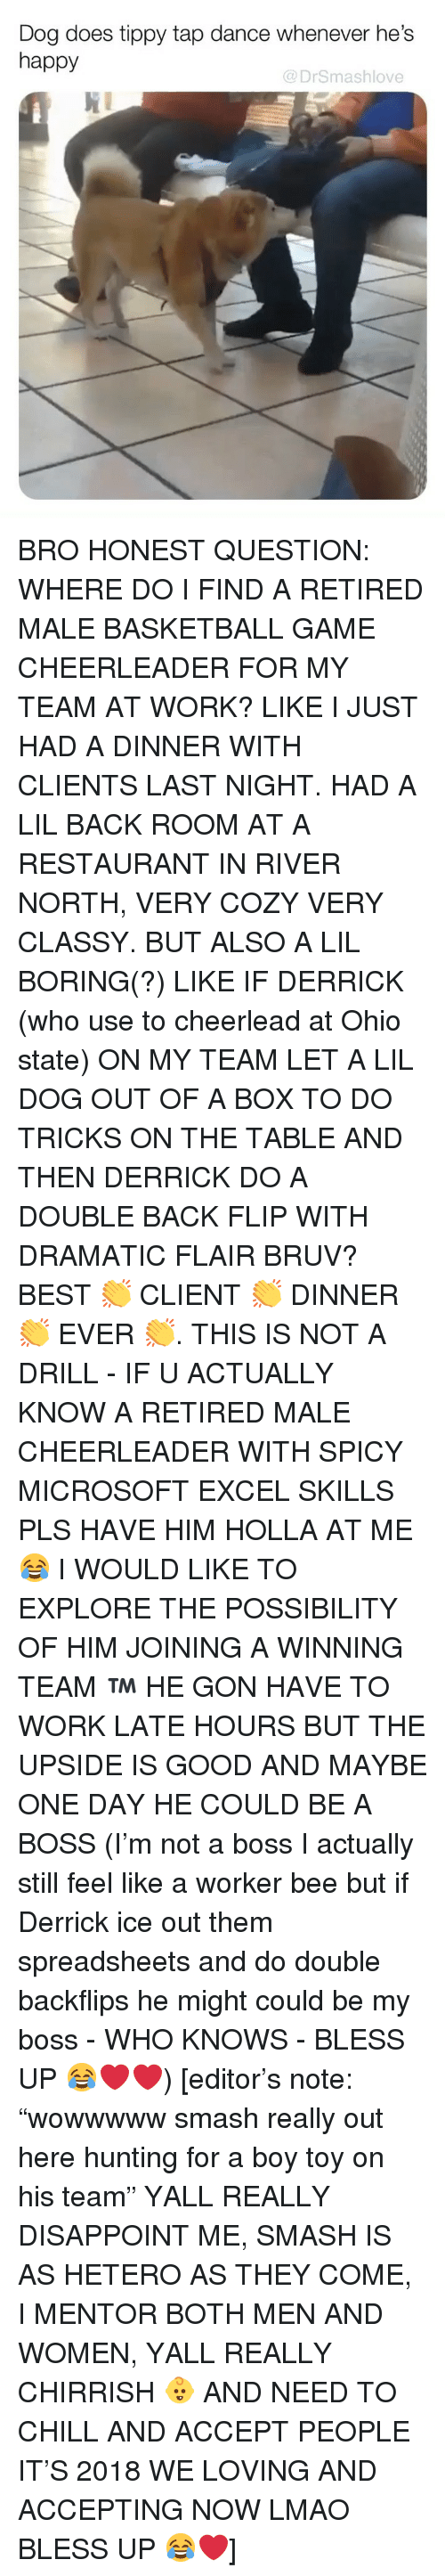 """Bruv: Dog does tippy tap dance whenever he's  happy  @DrSmashlove BRO HONEST QUESTION: WHERE DO I FIND A RETIRED MALE BASKETBALL GAME CHEERLEADER FOR MY TEAM AT WORK? LIKE I JUST HAD A DINNER WITH CLIENTS LAST NIGHT. HAD A LIL BACK ROOM AT A RESTAURANT IN RIVER NORTH, VERY COZY VERY CLASSY. BUT ALSO A LIL BORING(?) LIKE IF DERRICK (who use to cheerlead at Ohio state) ON MY TEAM LET A LIL DOG OUT OF A BOX TO DO TRICKS ON THE TABLE AND THEN DERRICK DO A DOUBLE BACK FLIP WITH DRAMATIC FLAIR BRUV? BEST 👏 CLIENT 👏 DINNER 👏 EVER 👏. THIS IS NOT A DRILL - IF U ACTUALLY KNOW A RETIRED MALE CHEERLEADER WITH SPICY MICROSOFT EXCEL SKILLS PLS HAVE HIM HOLLA AT ME 😂 I WOULD LIKE TO EXPLORE THE POSSIBILITY OF HIM JOINING A WINNING TEAM ™️ HE GON HAVE TO WORK LATE HOURS BUT THE UPSIDE IS GOOD AND MAYBE ONE DAY HE COULD BE A BOSS (I'm not a boss I actually still feel like a worker bee but if Derrick ice out them spreadsheets and do double backflips he might could be my boss - WHO KNOWS - BLESS UP 😂❤️❤️) [editor's note: """"wowwwww smash really out here hunting for a boy toy on his team"""" YALL REALLY DISAPPOINT ME, SMASH IS AS HETERO AS THEY COME, I MENTOR BOTH MEN AND WOMEN, YALL REALLY CHIRRISH 👶 AND NEED TO CHILL AND ACCEPT PEOPLE IT'S 2018 WE LOVING AND ACCEPTING NOW LMAO BLESS UP 😂❤️]"""